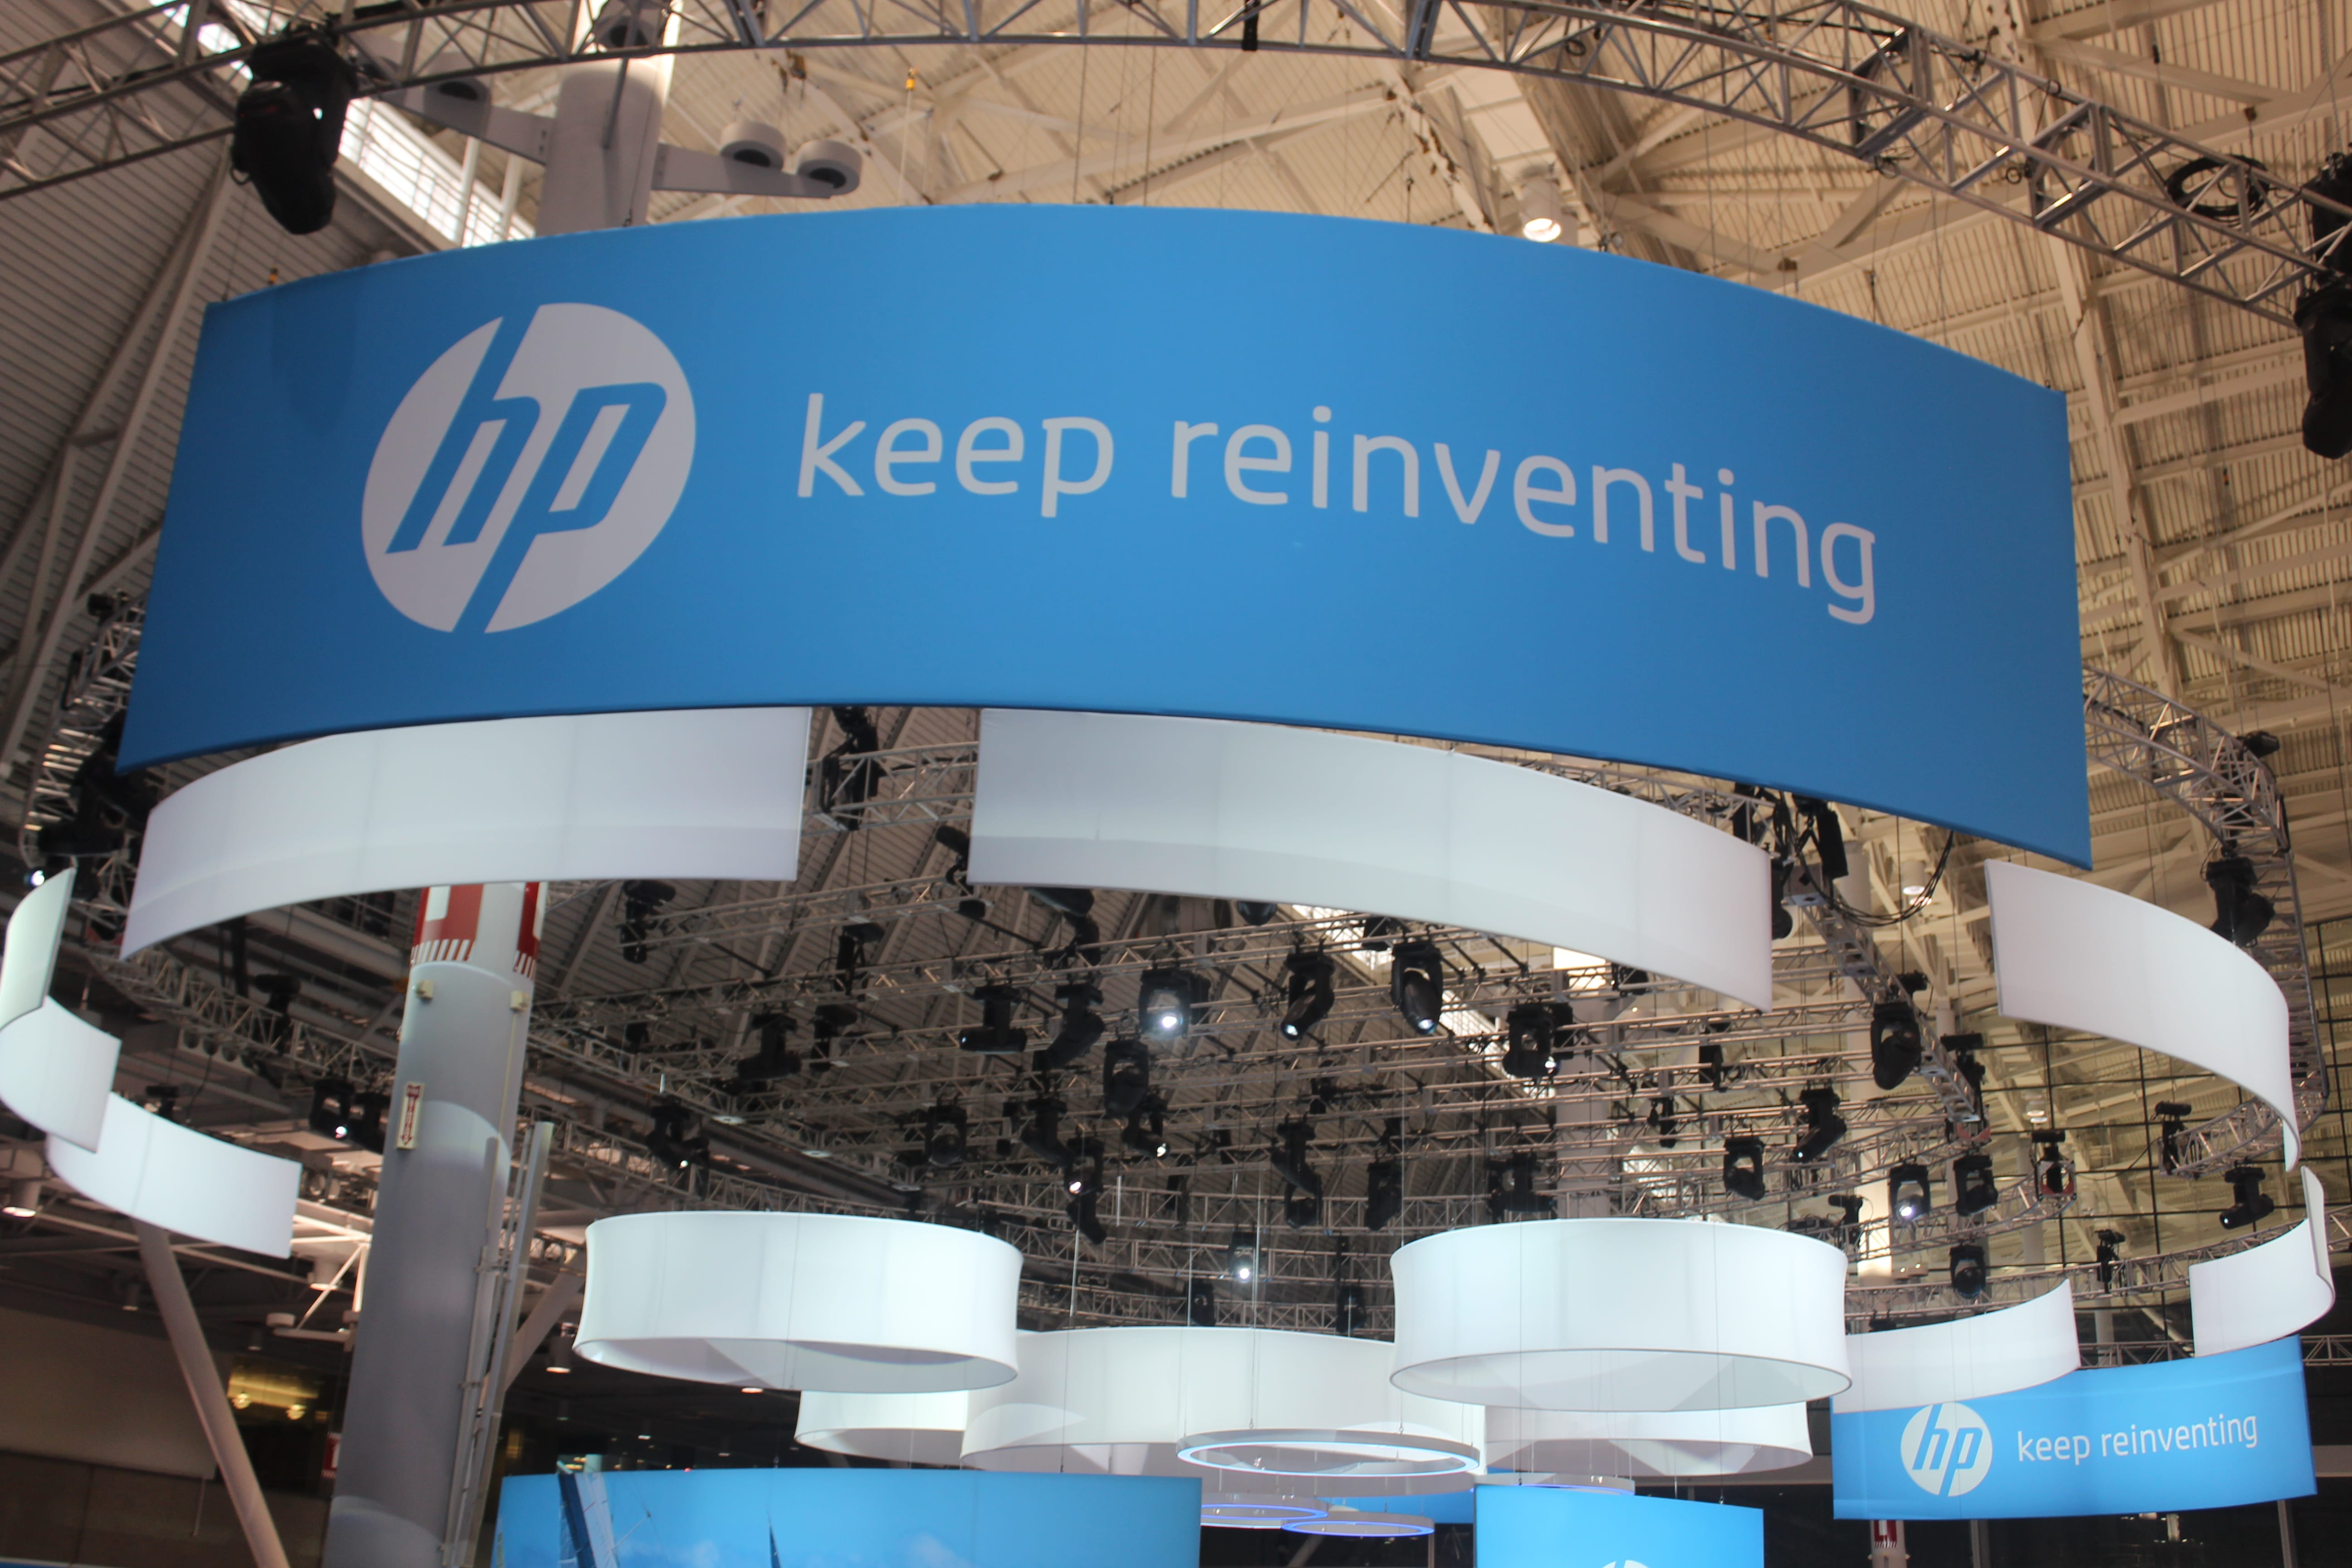 Is HP Inc. poised to disrupt the print industry?